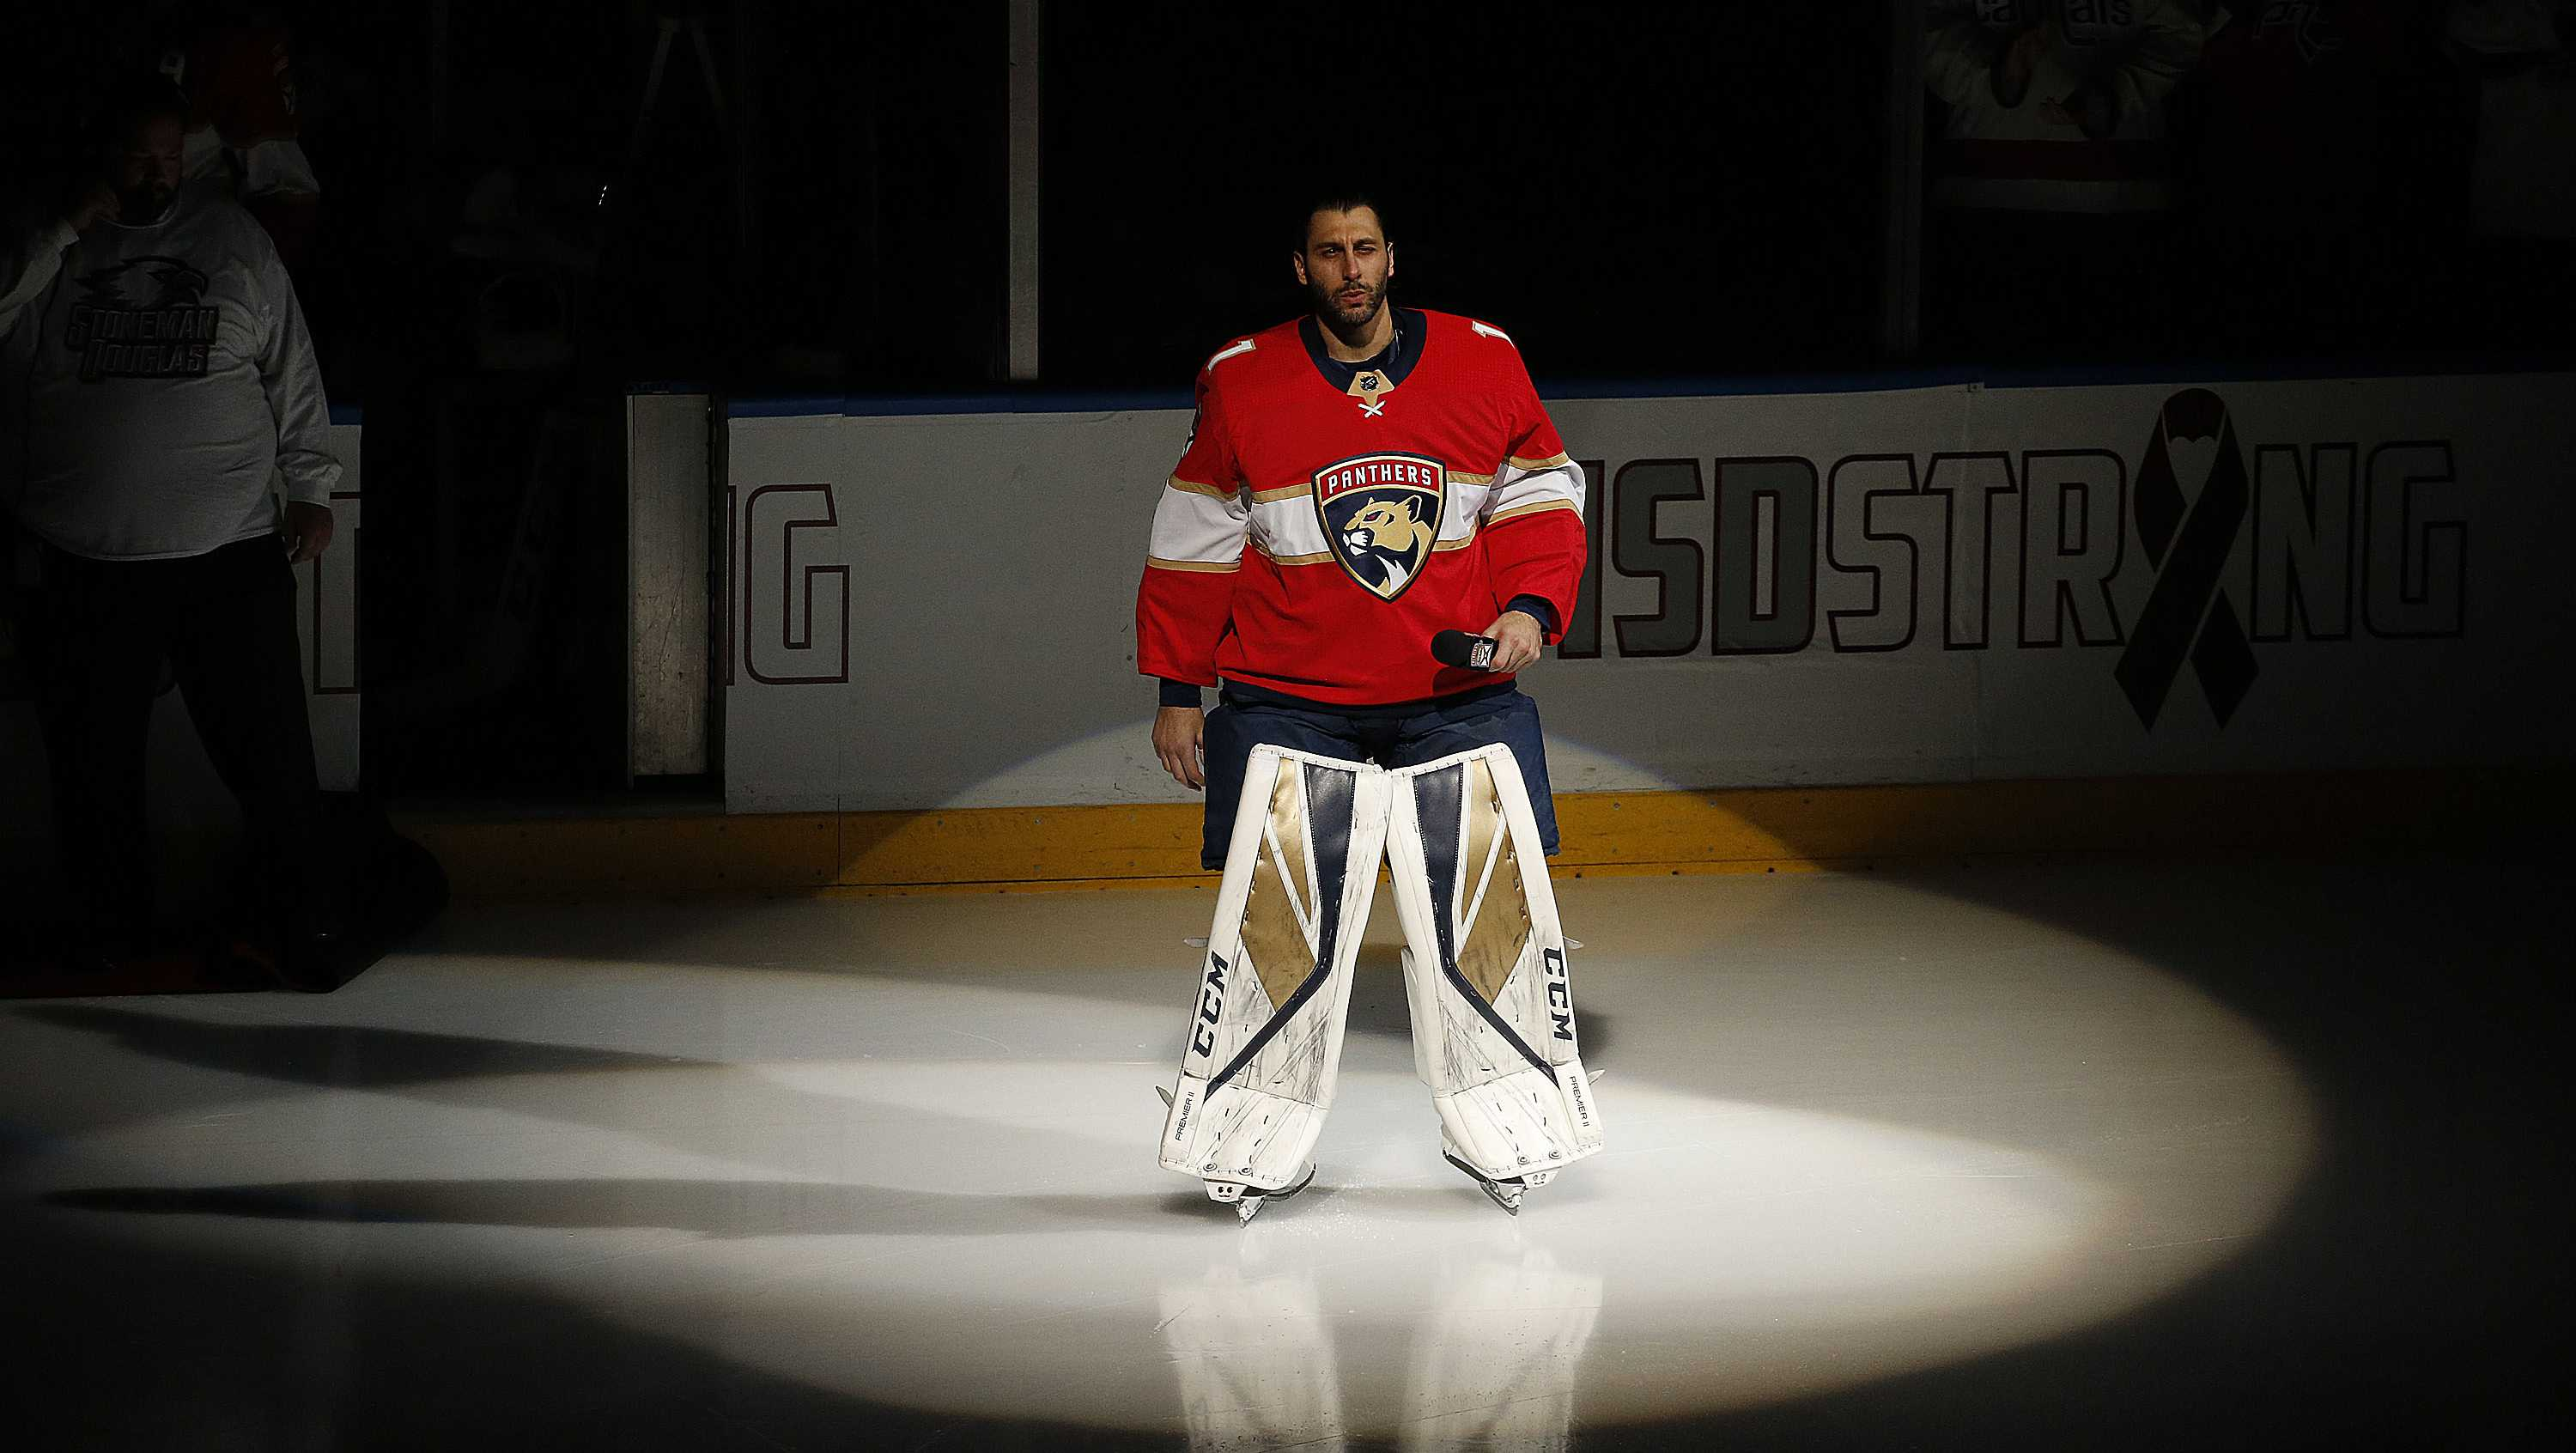 Goaltender Roberto Luongo #1 of the Florida Panthers who is a longtime resident of Parkland Florida speaks to the crowd prior to the start of the game against the Washington Capitals about the tragedy at Stoneman Douglas High School. at the BB&T Center on February 22, 2018 in Sunrise, Florida.